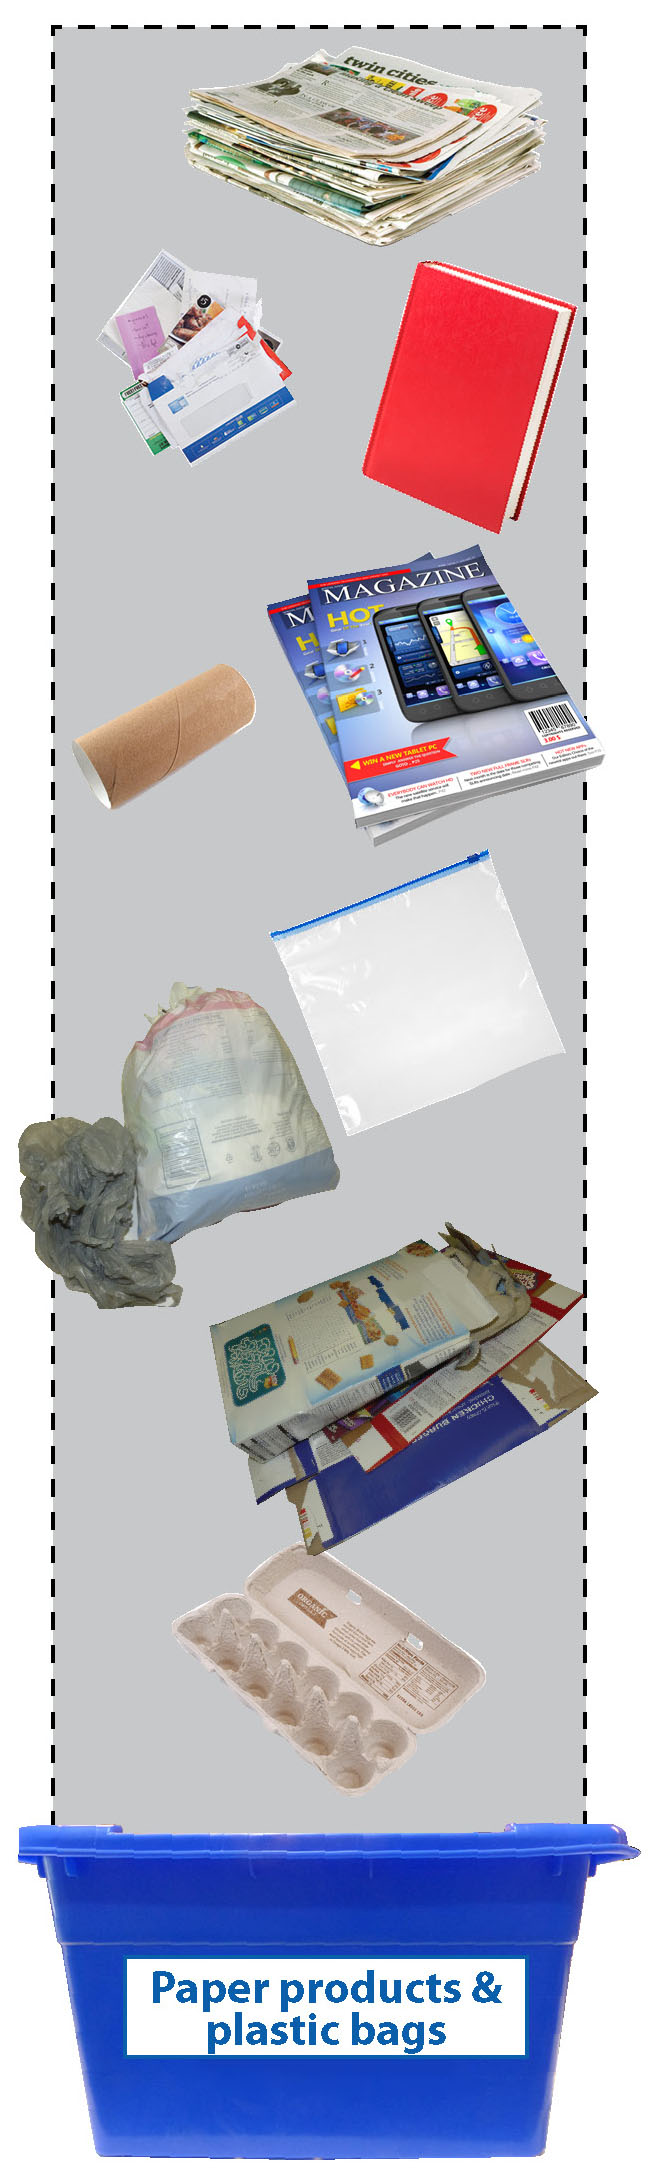 Paper products and plastic bags going into the Paper and plastic bags blue box